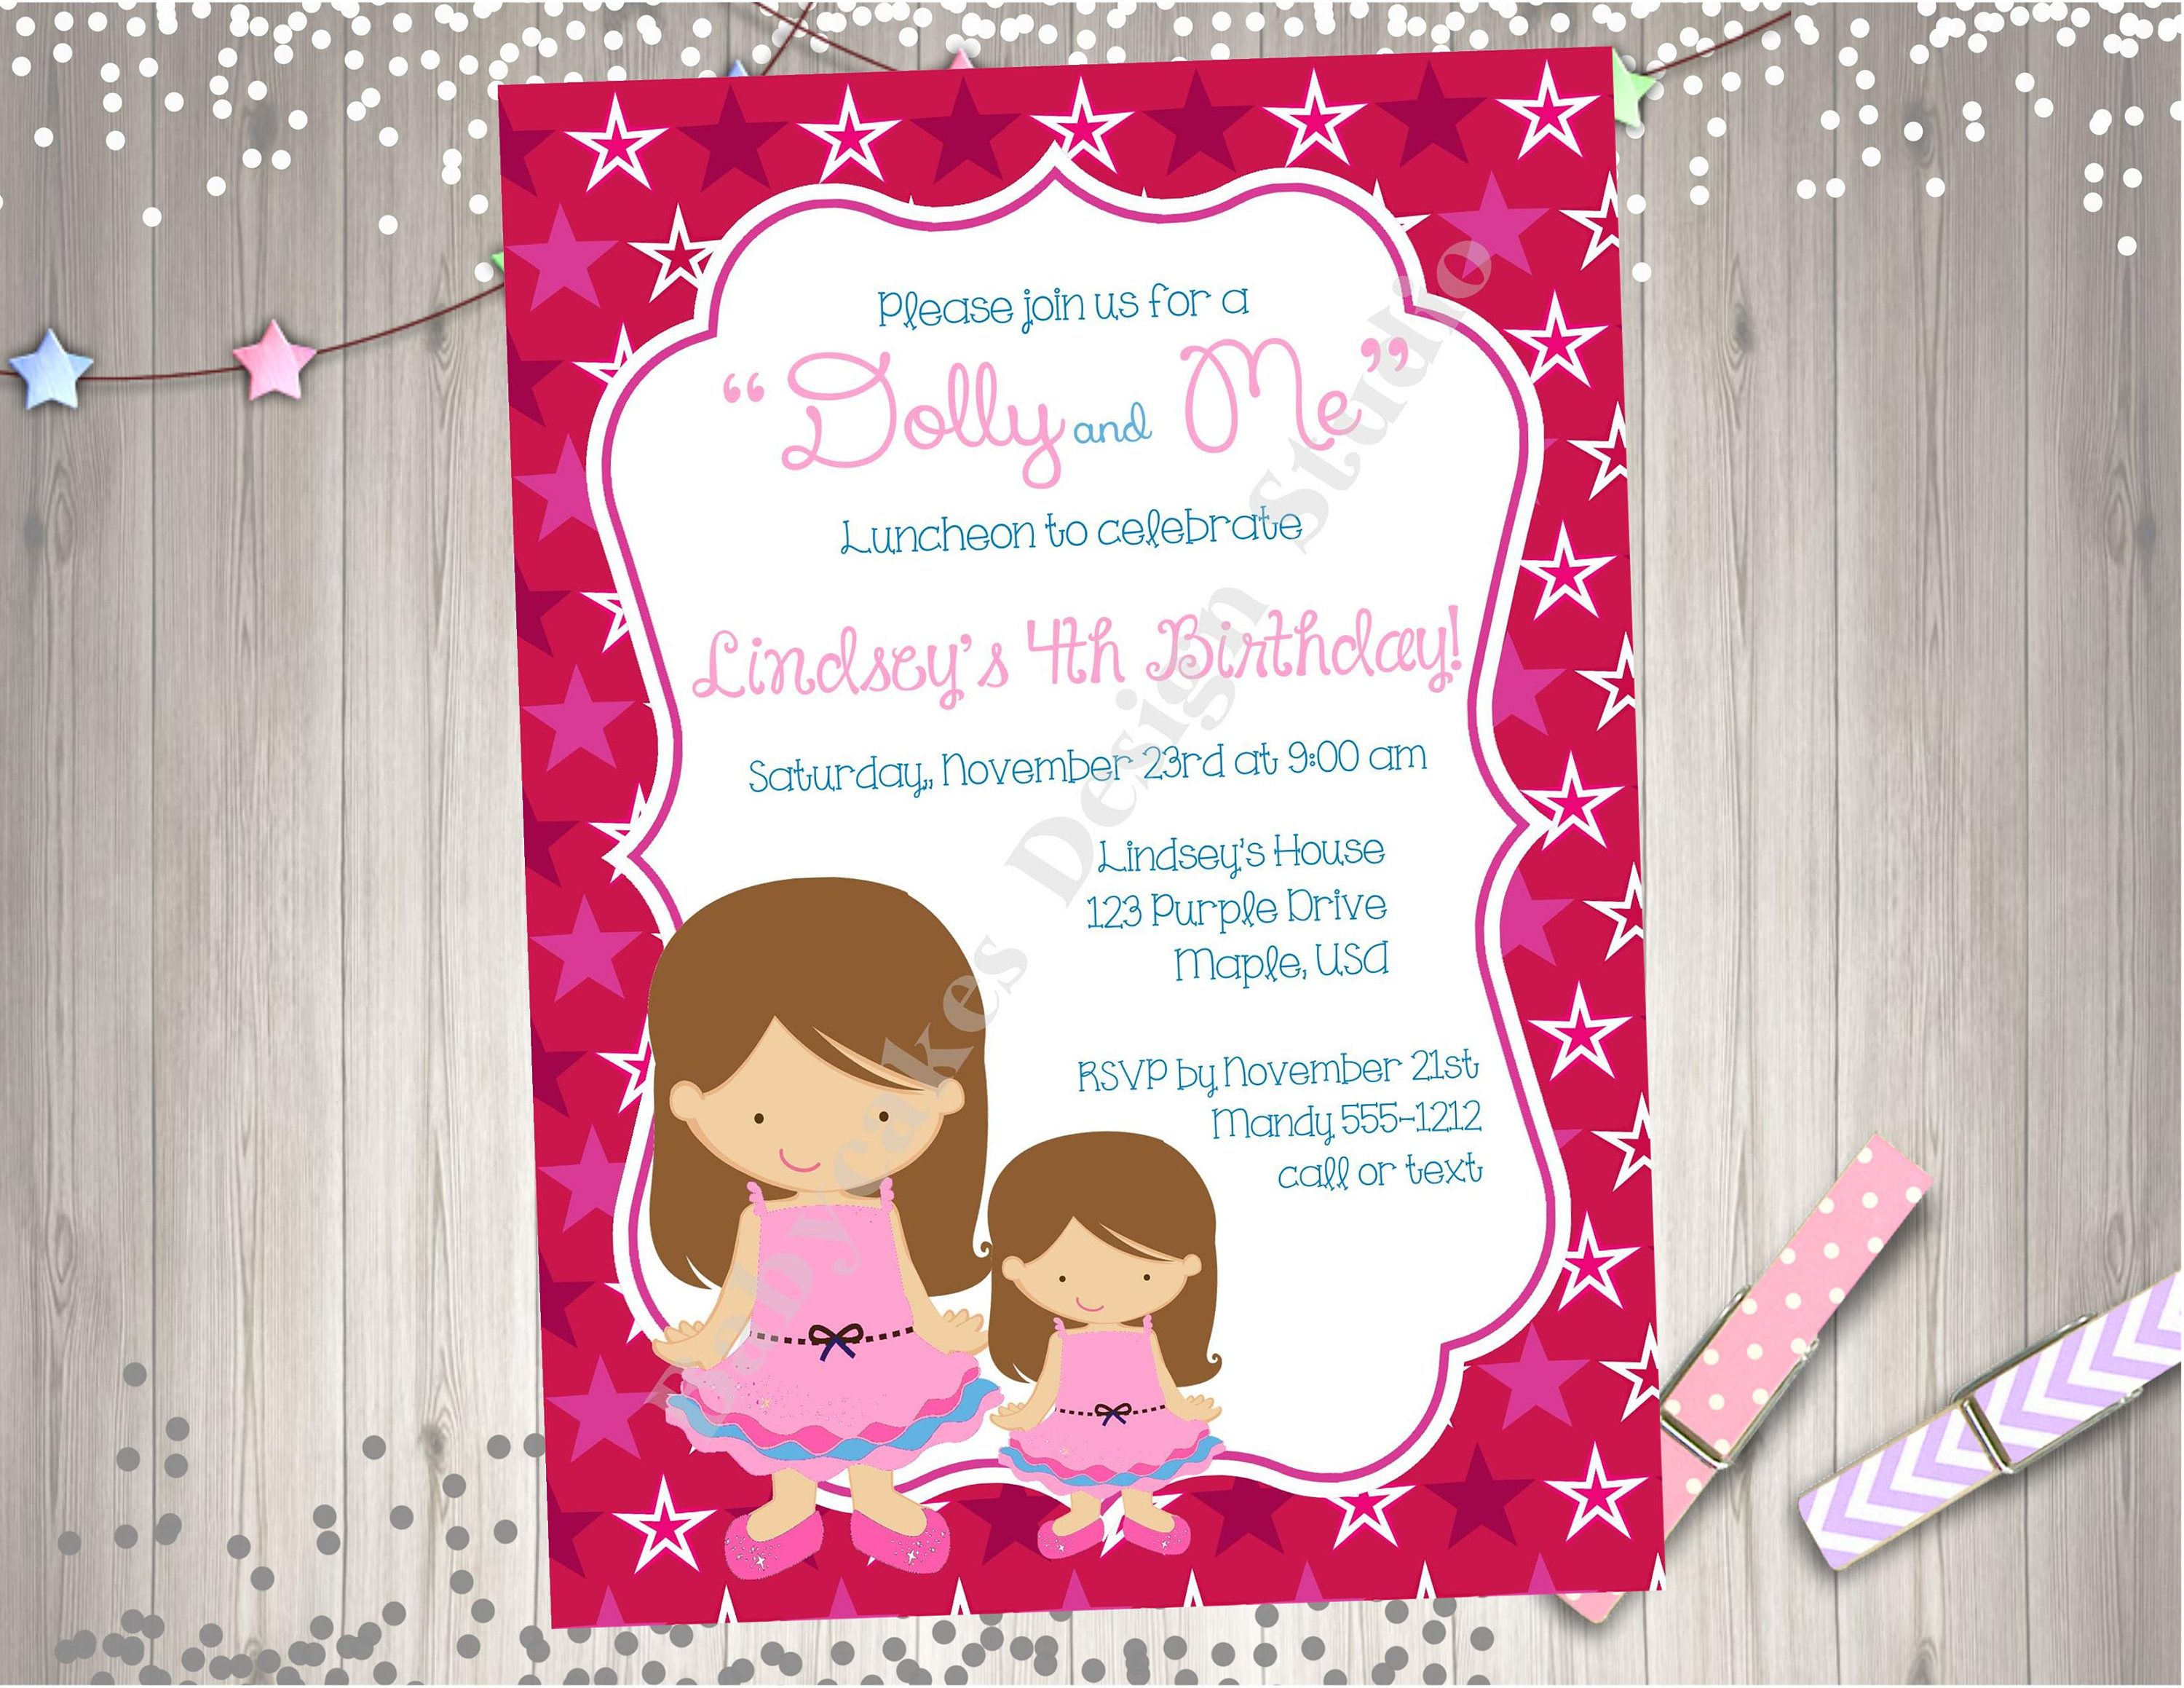 Dolly and me birthday party invitation invite birthday girl dolly dolly and me birthday party invitation invite birthday girl dolly and me tea party printable birthday stopboris Image collections